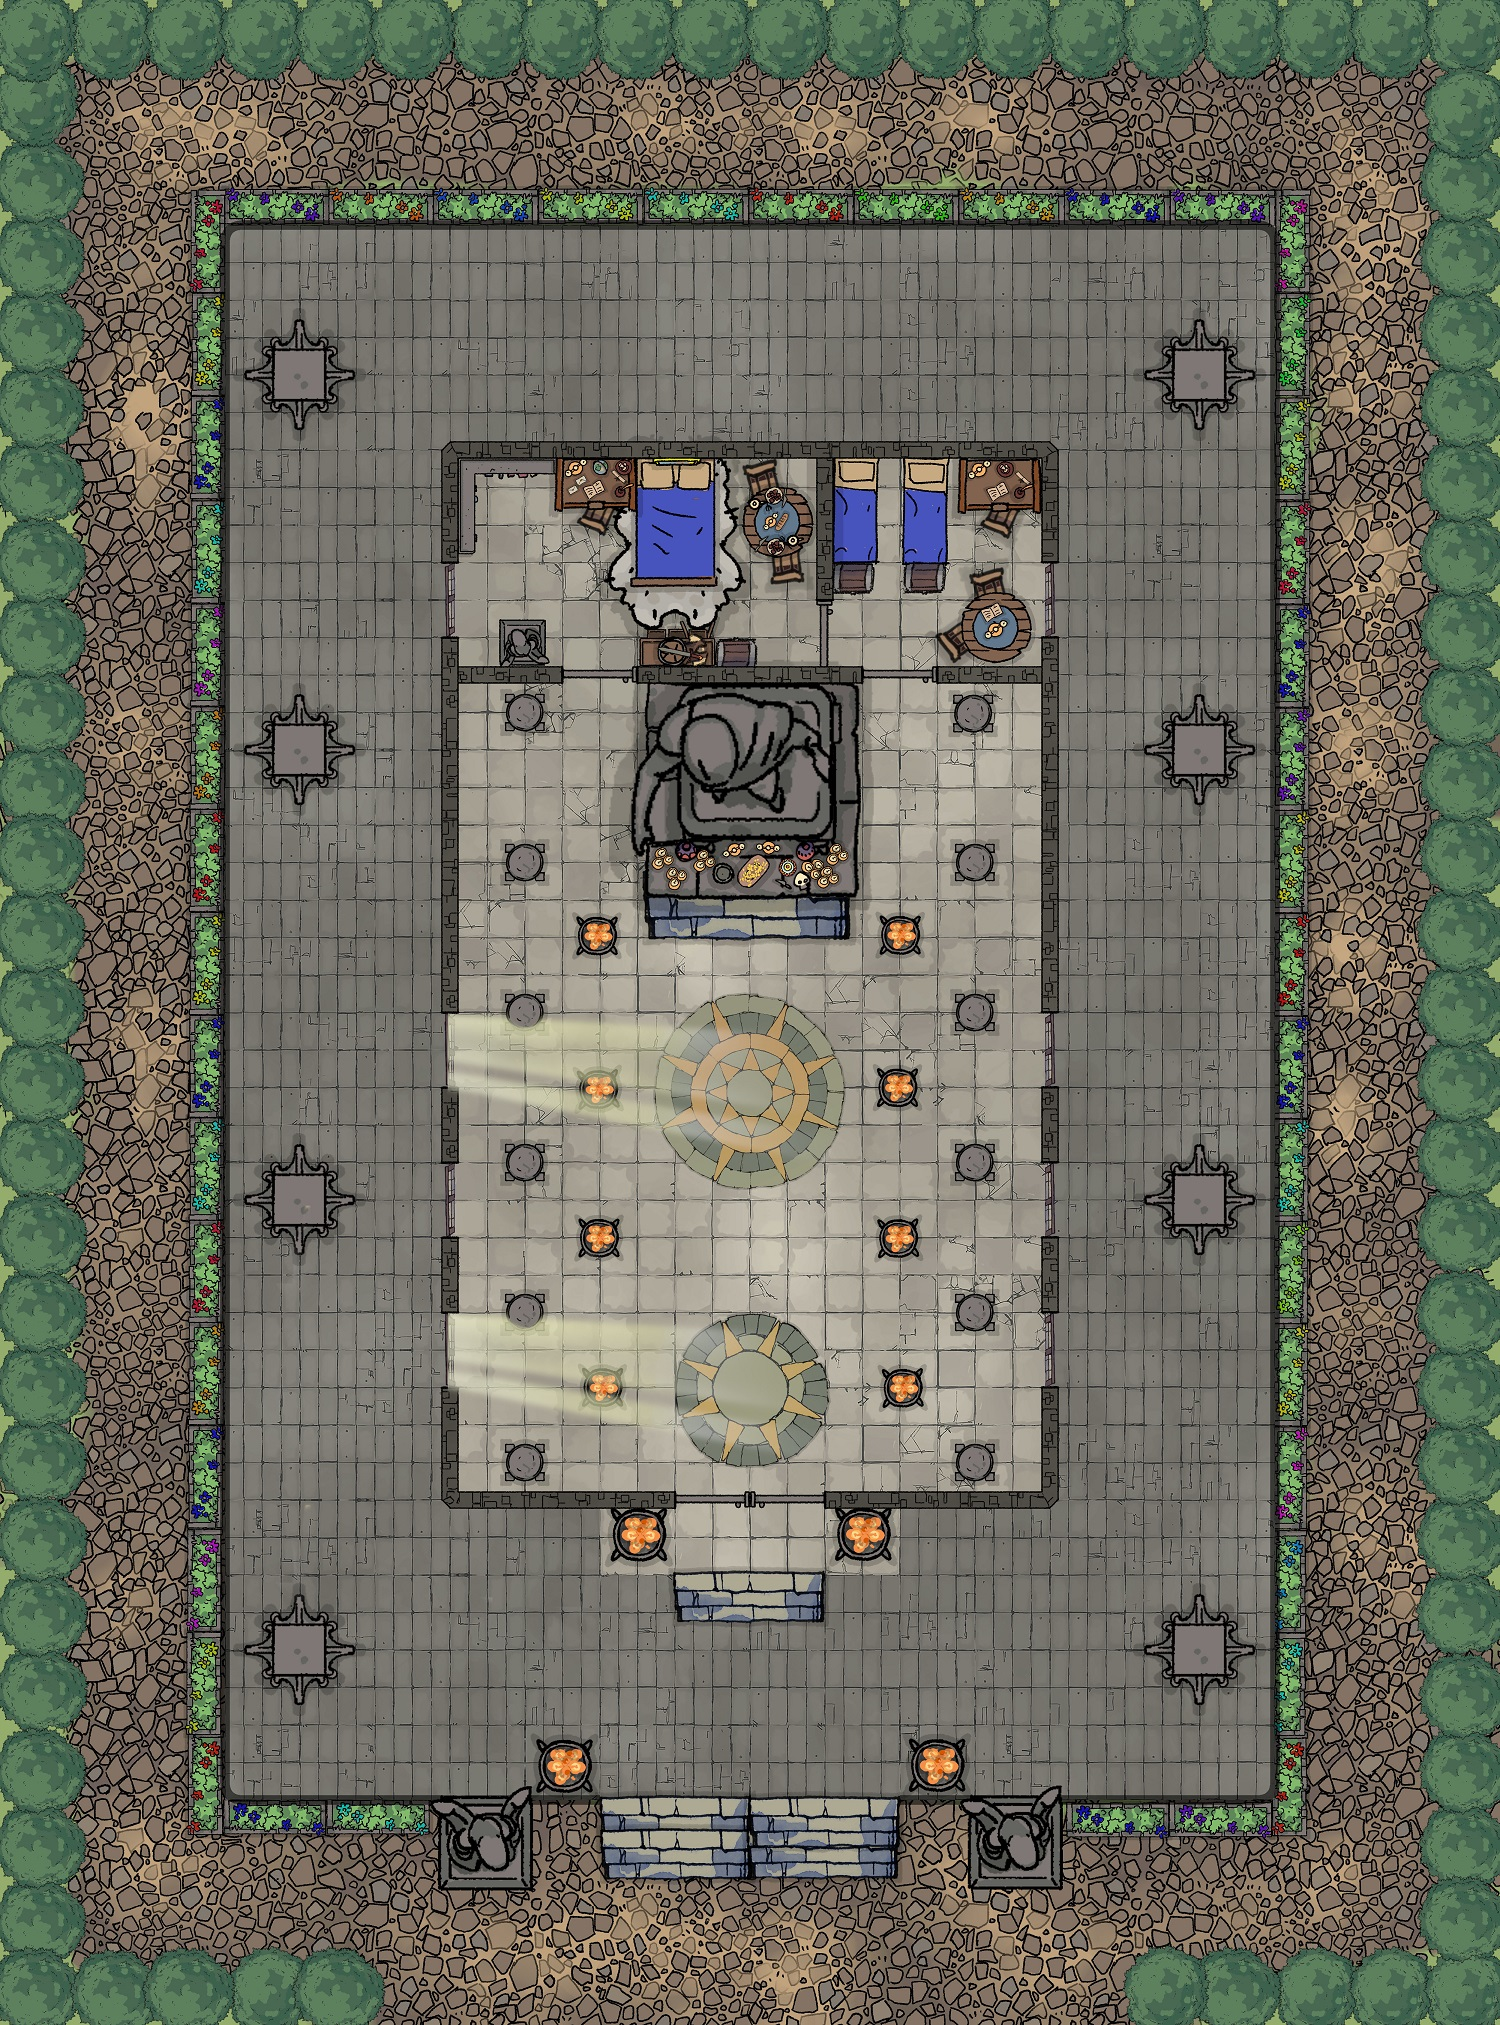 Temple of Helios no grid 20 x 27 reduced.jpg